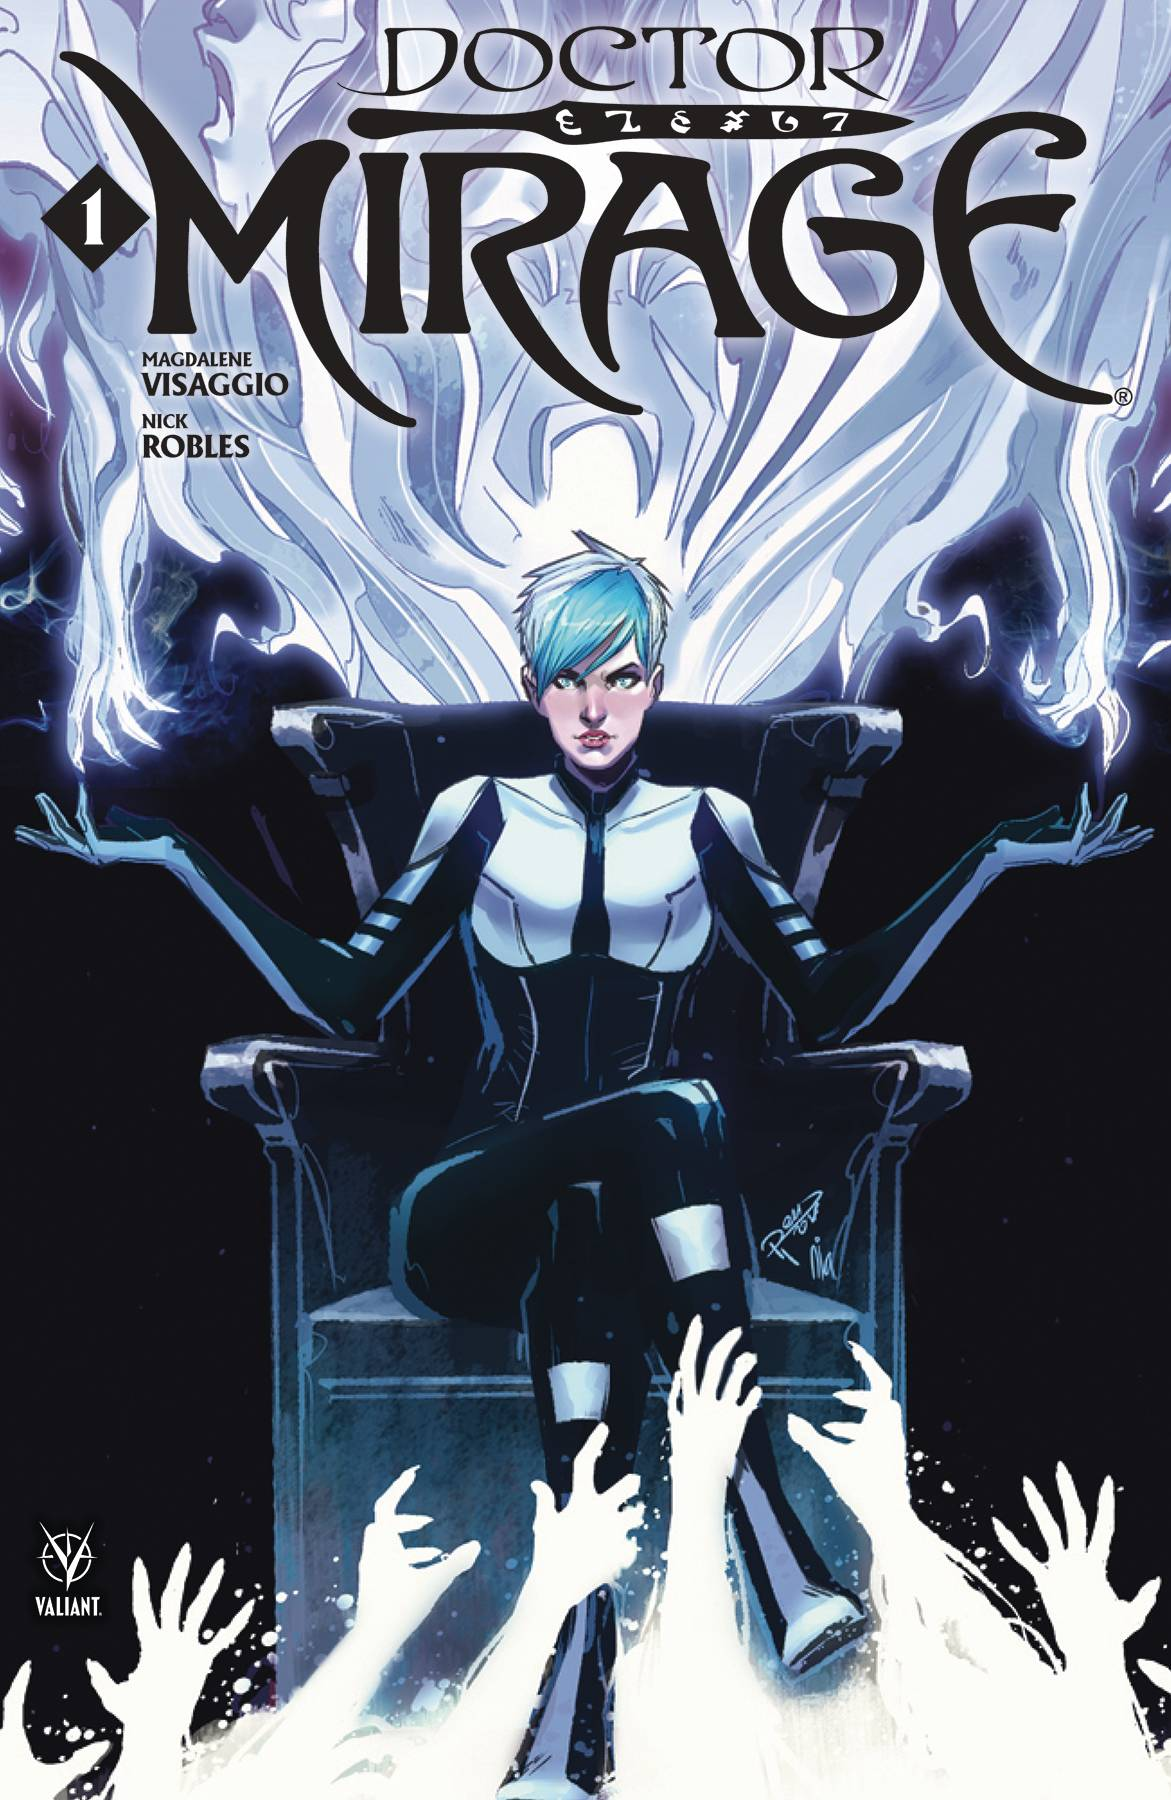 DOCTOR MIRAGE #1 (OF 5)